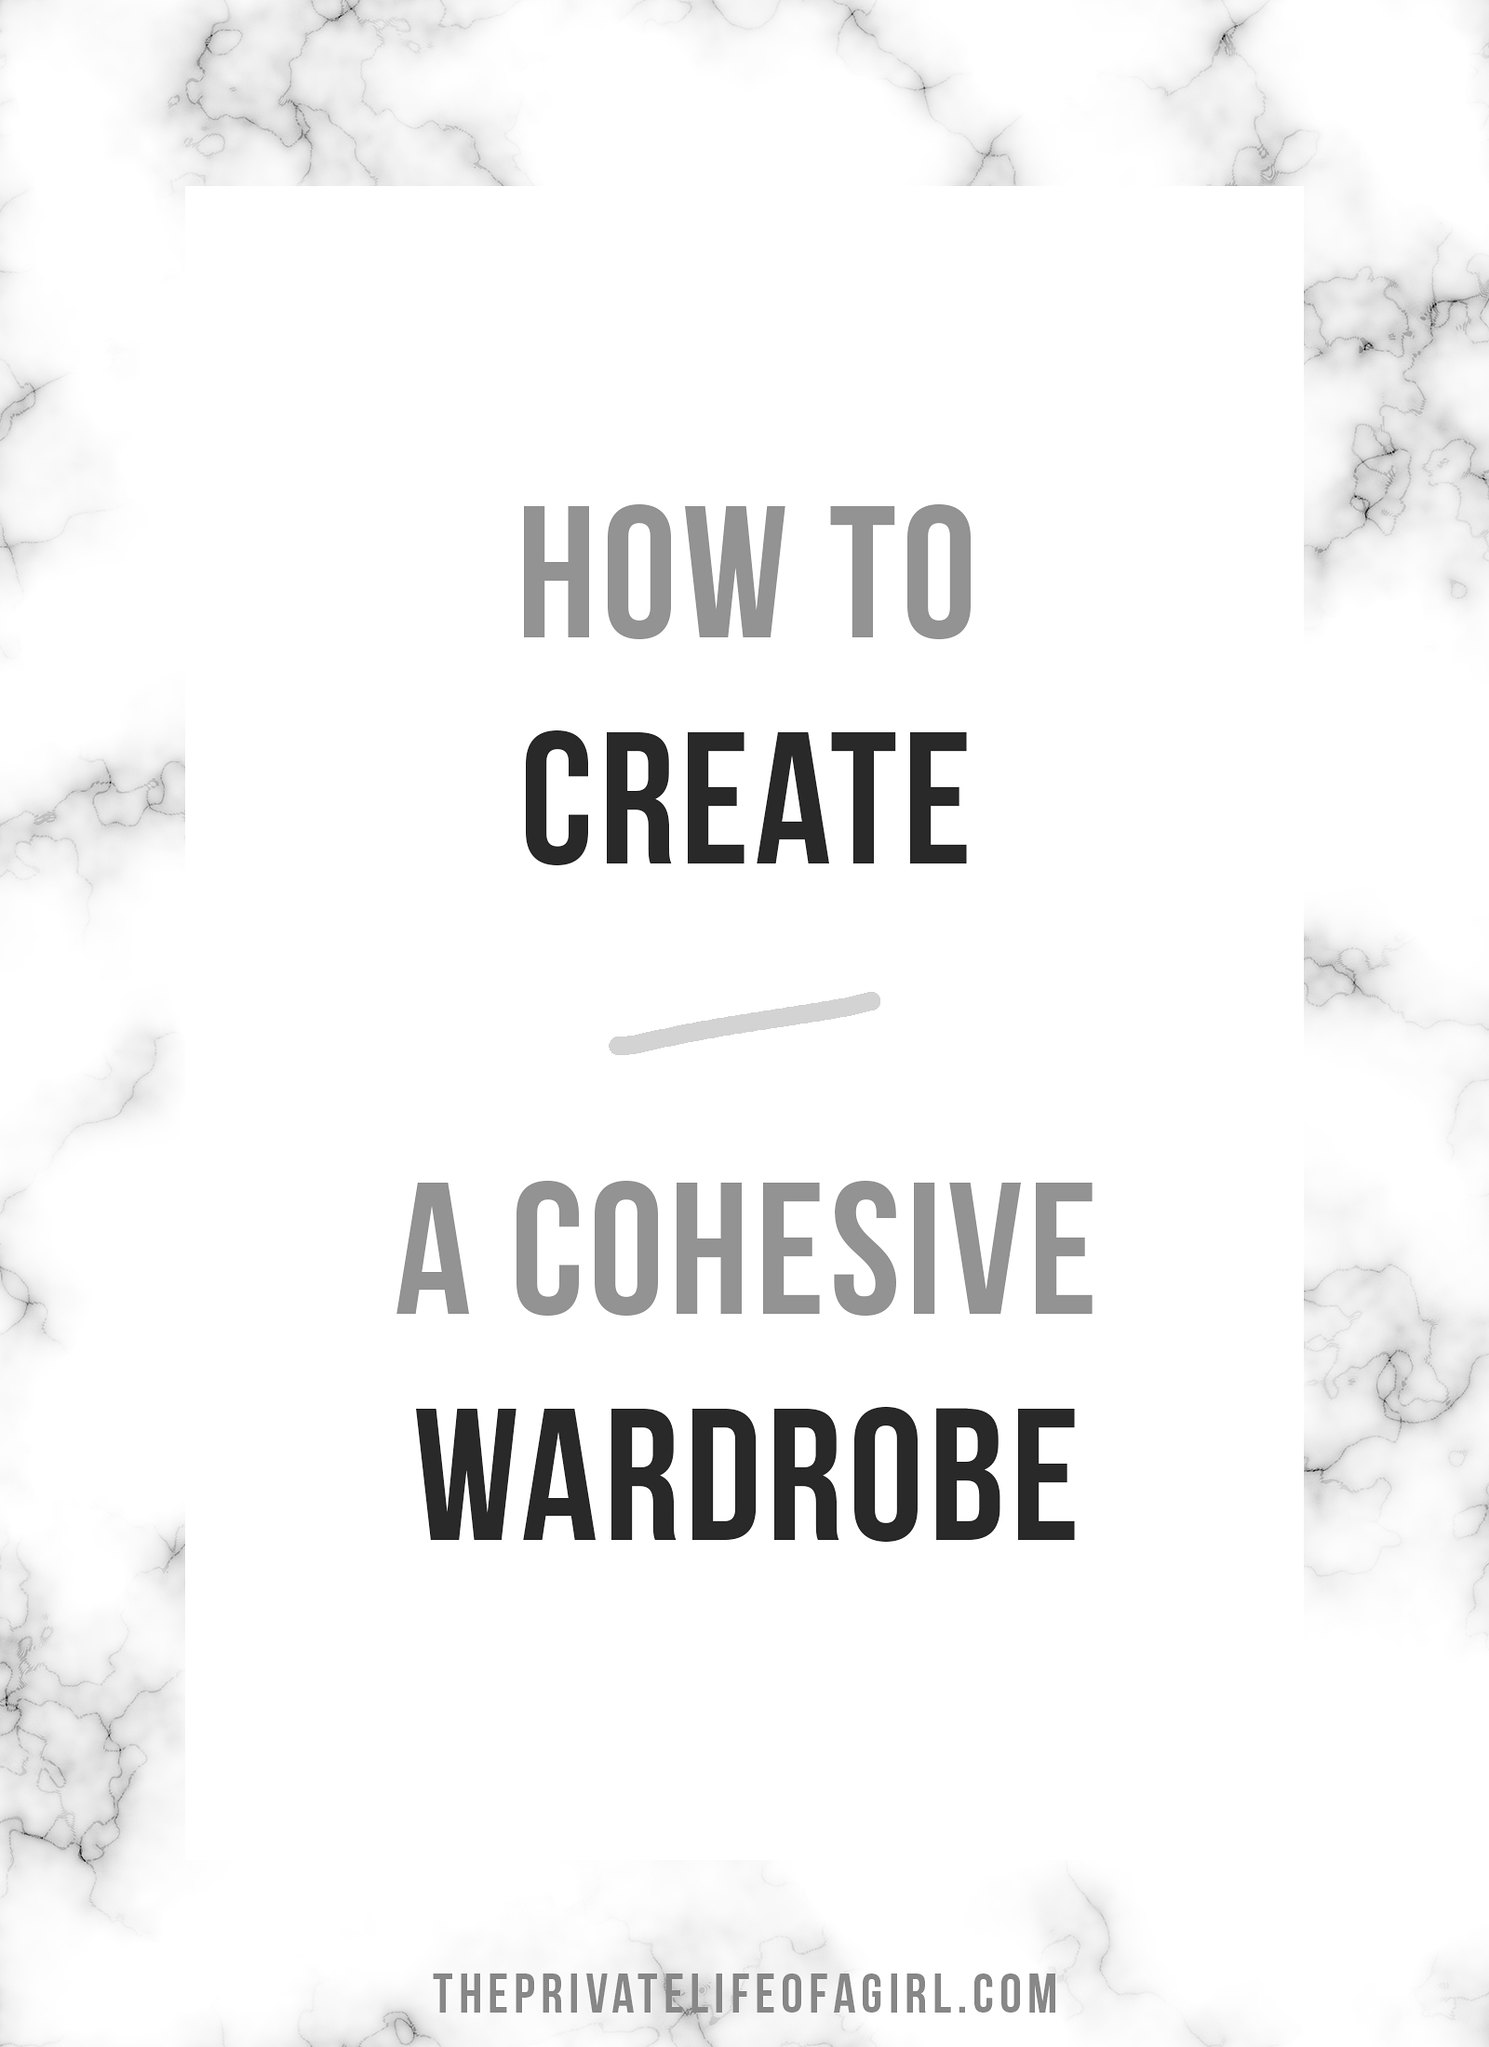 How To Create A Cohesive Wardrobe